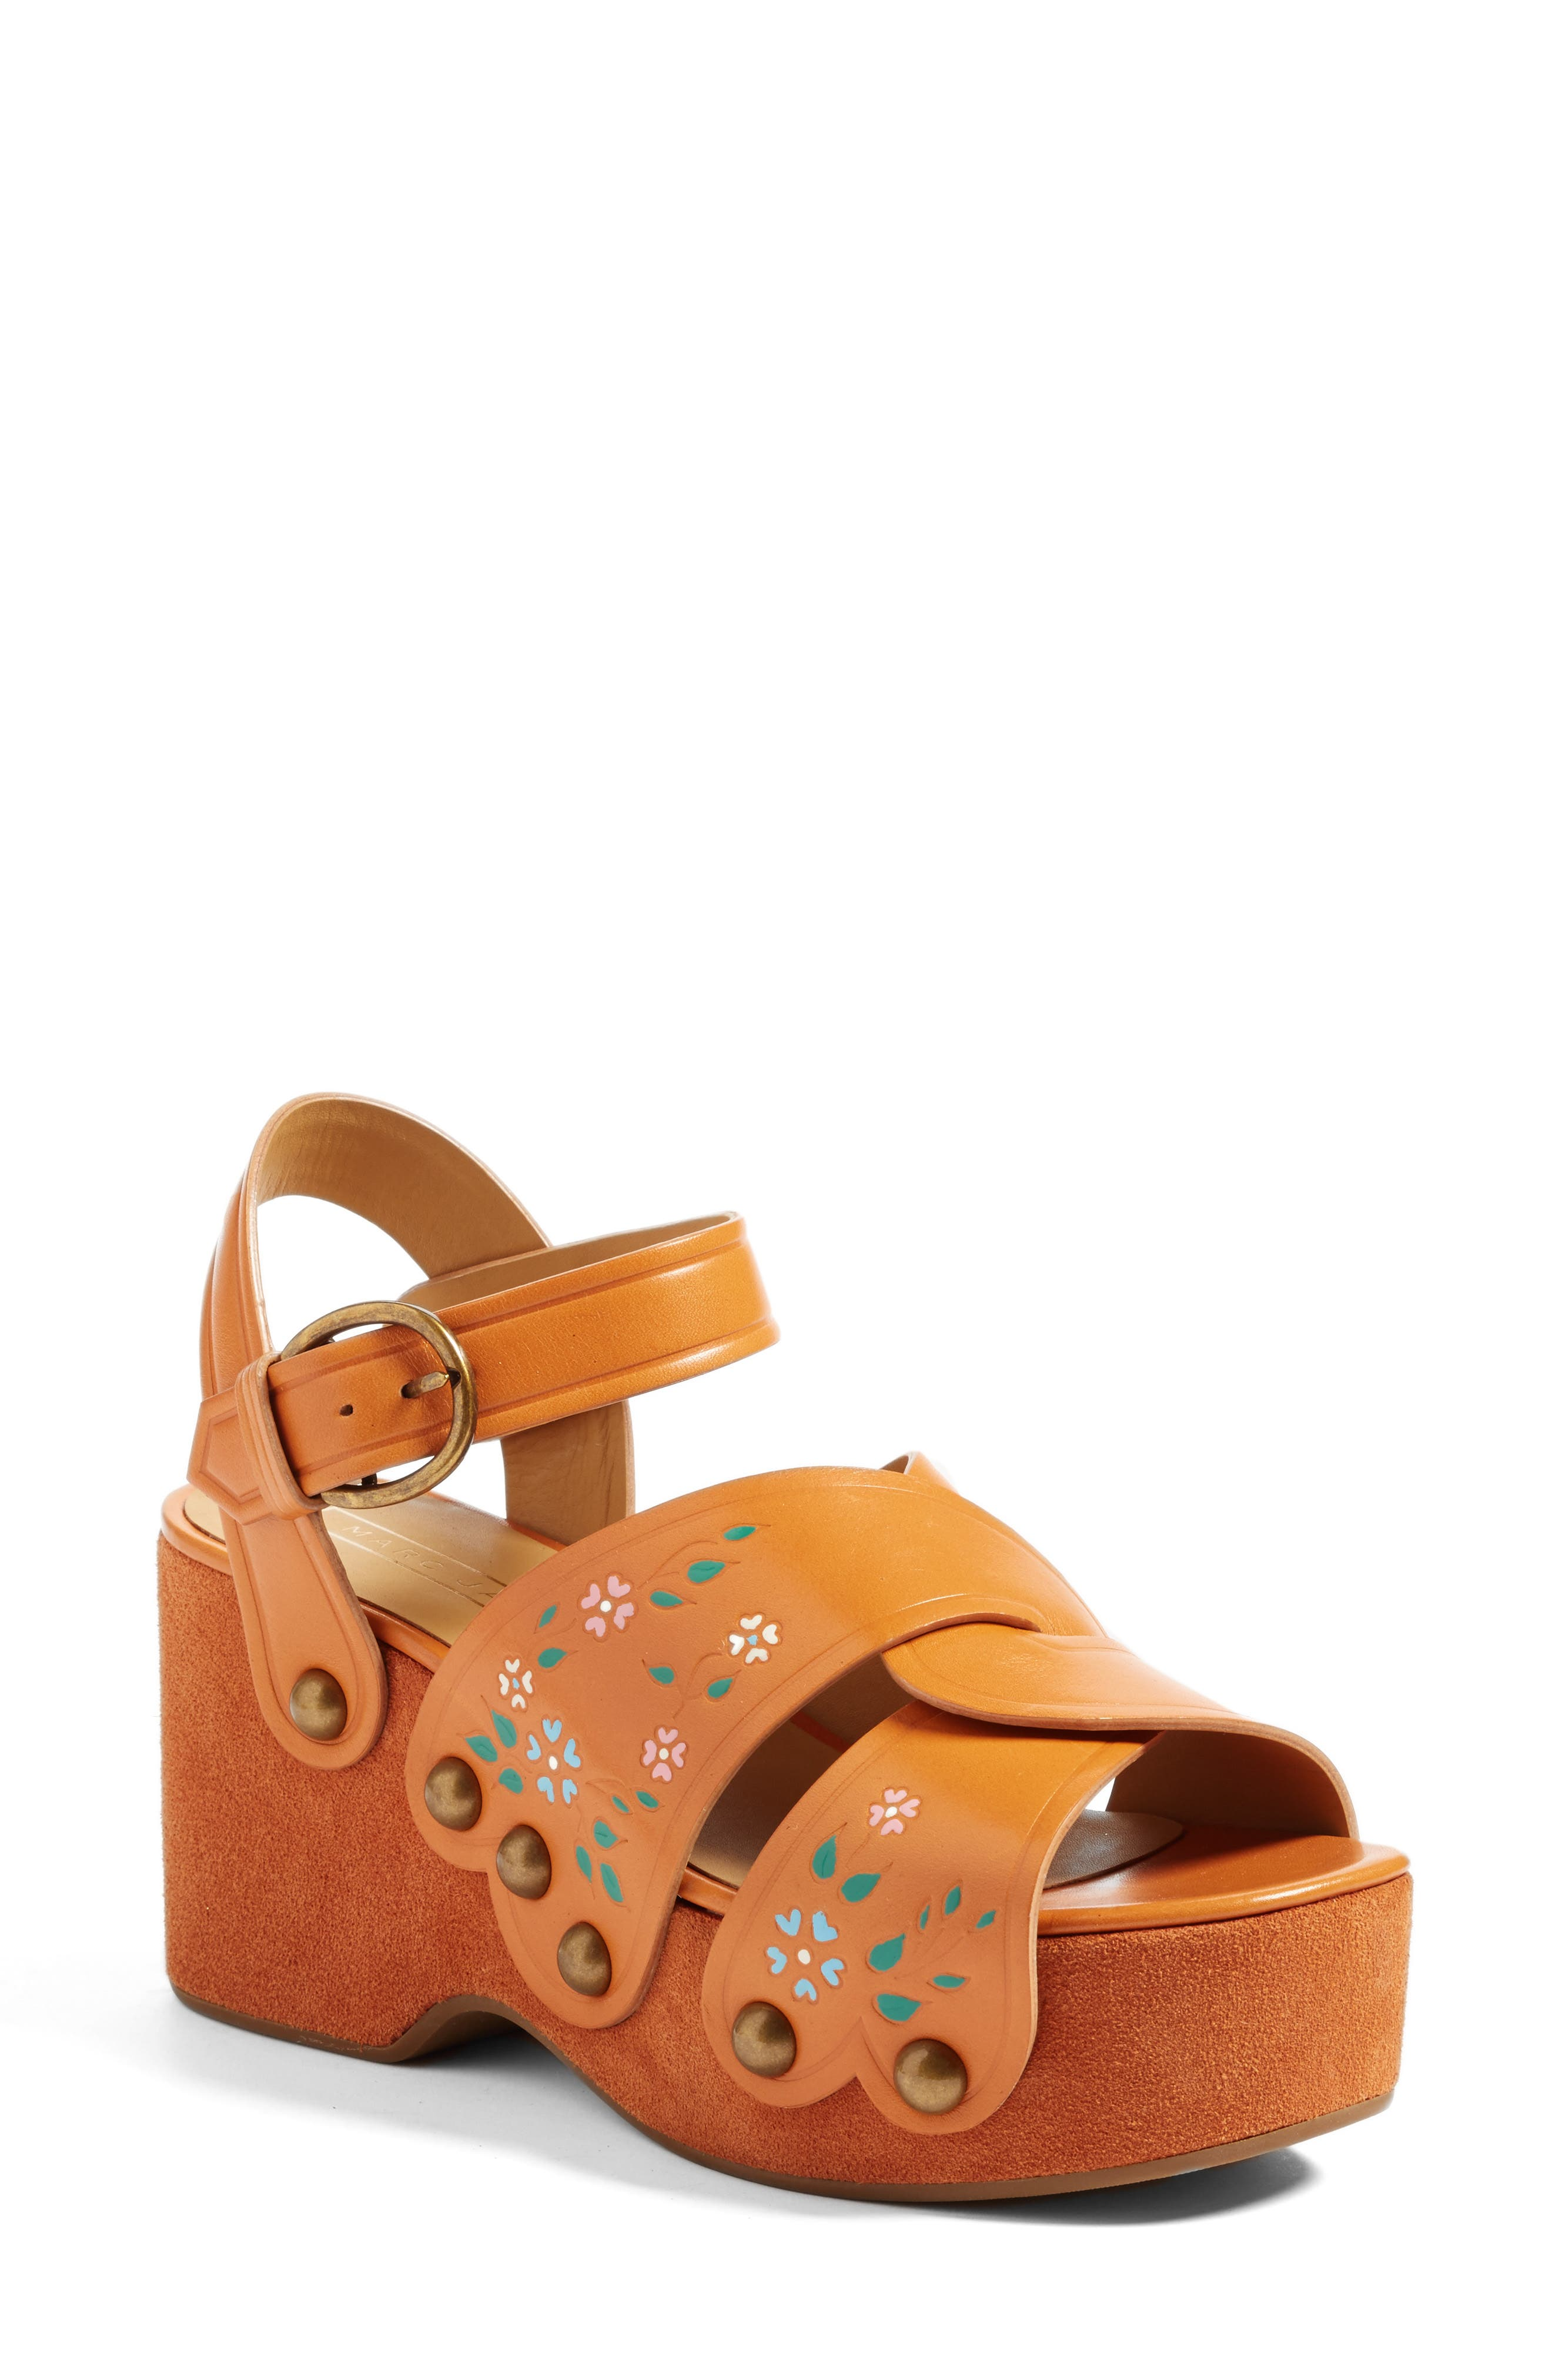 MARC JACOBS Wildflower Wedge Sandal